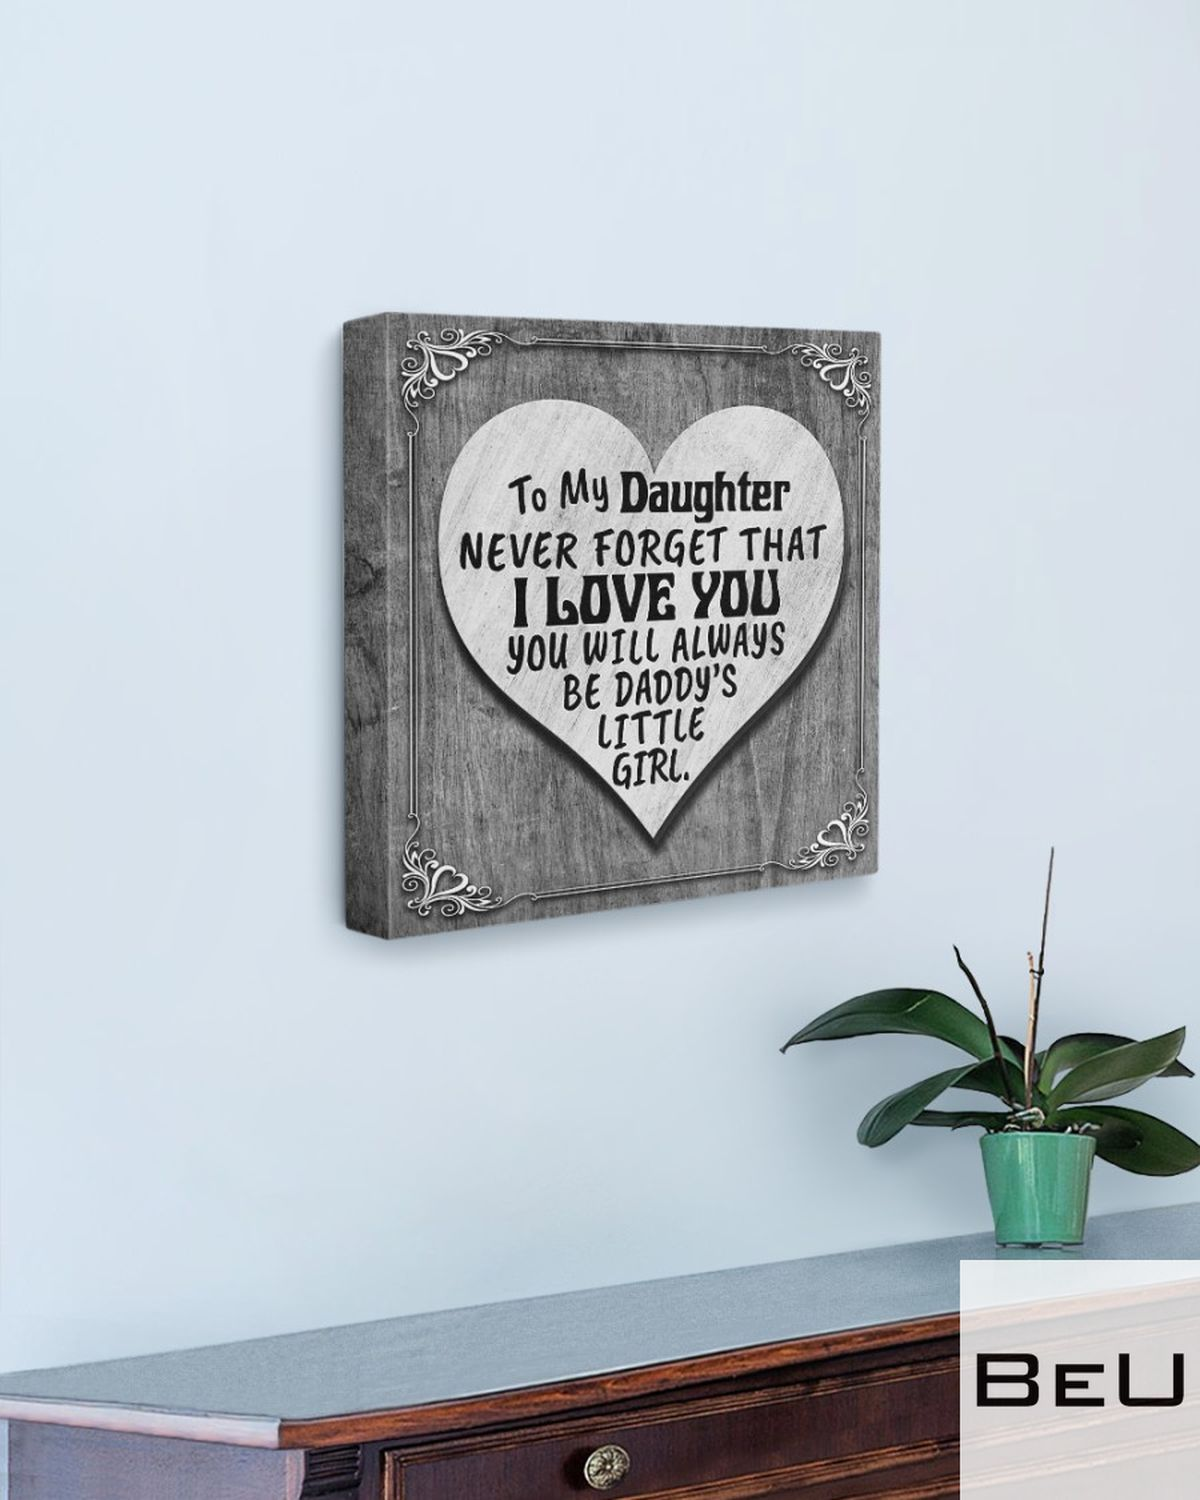 To My Daughter Never Forget That I Love You You Will Always Be Daddy's Little Girl Canvasz